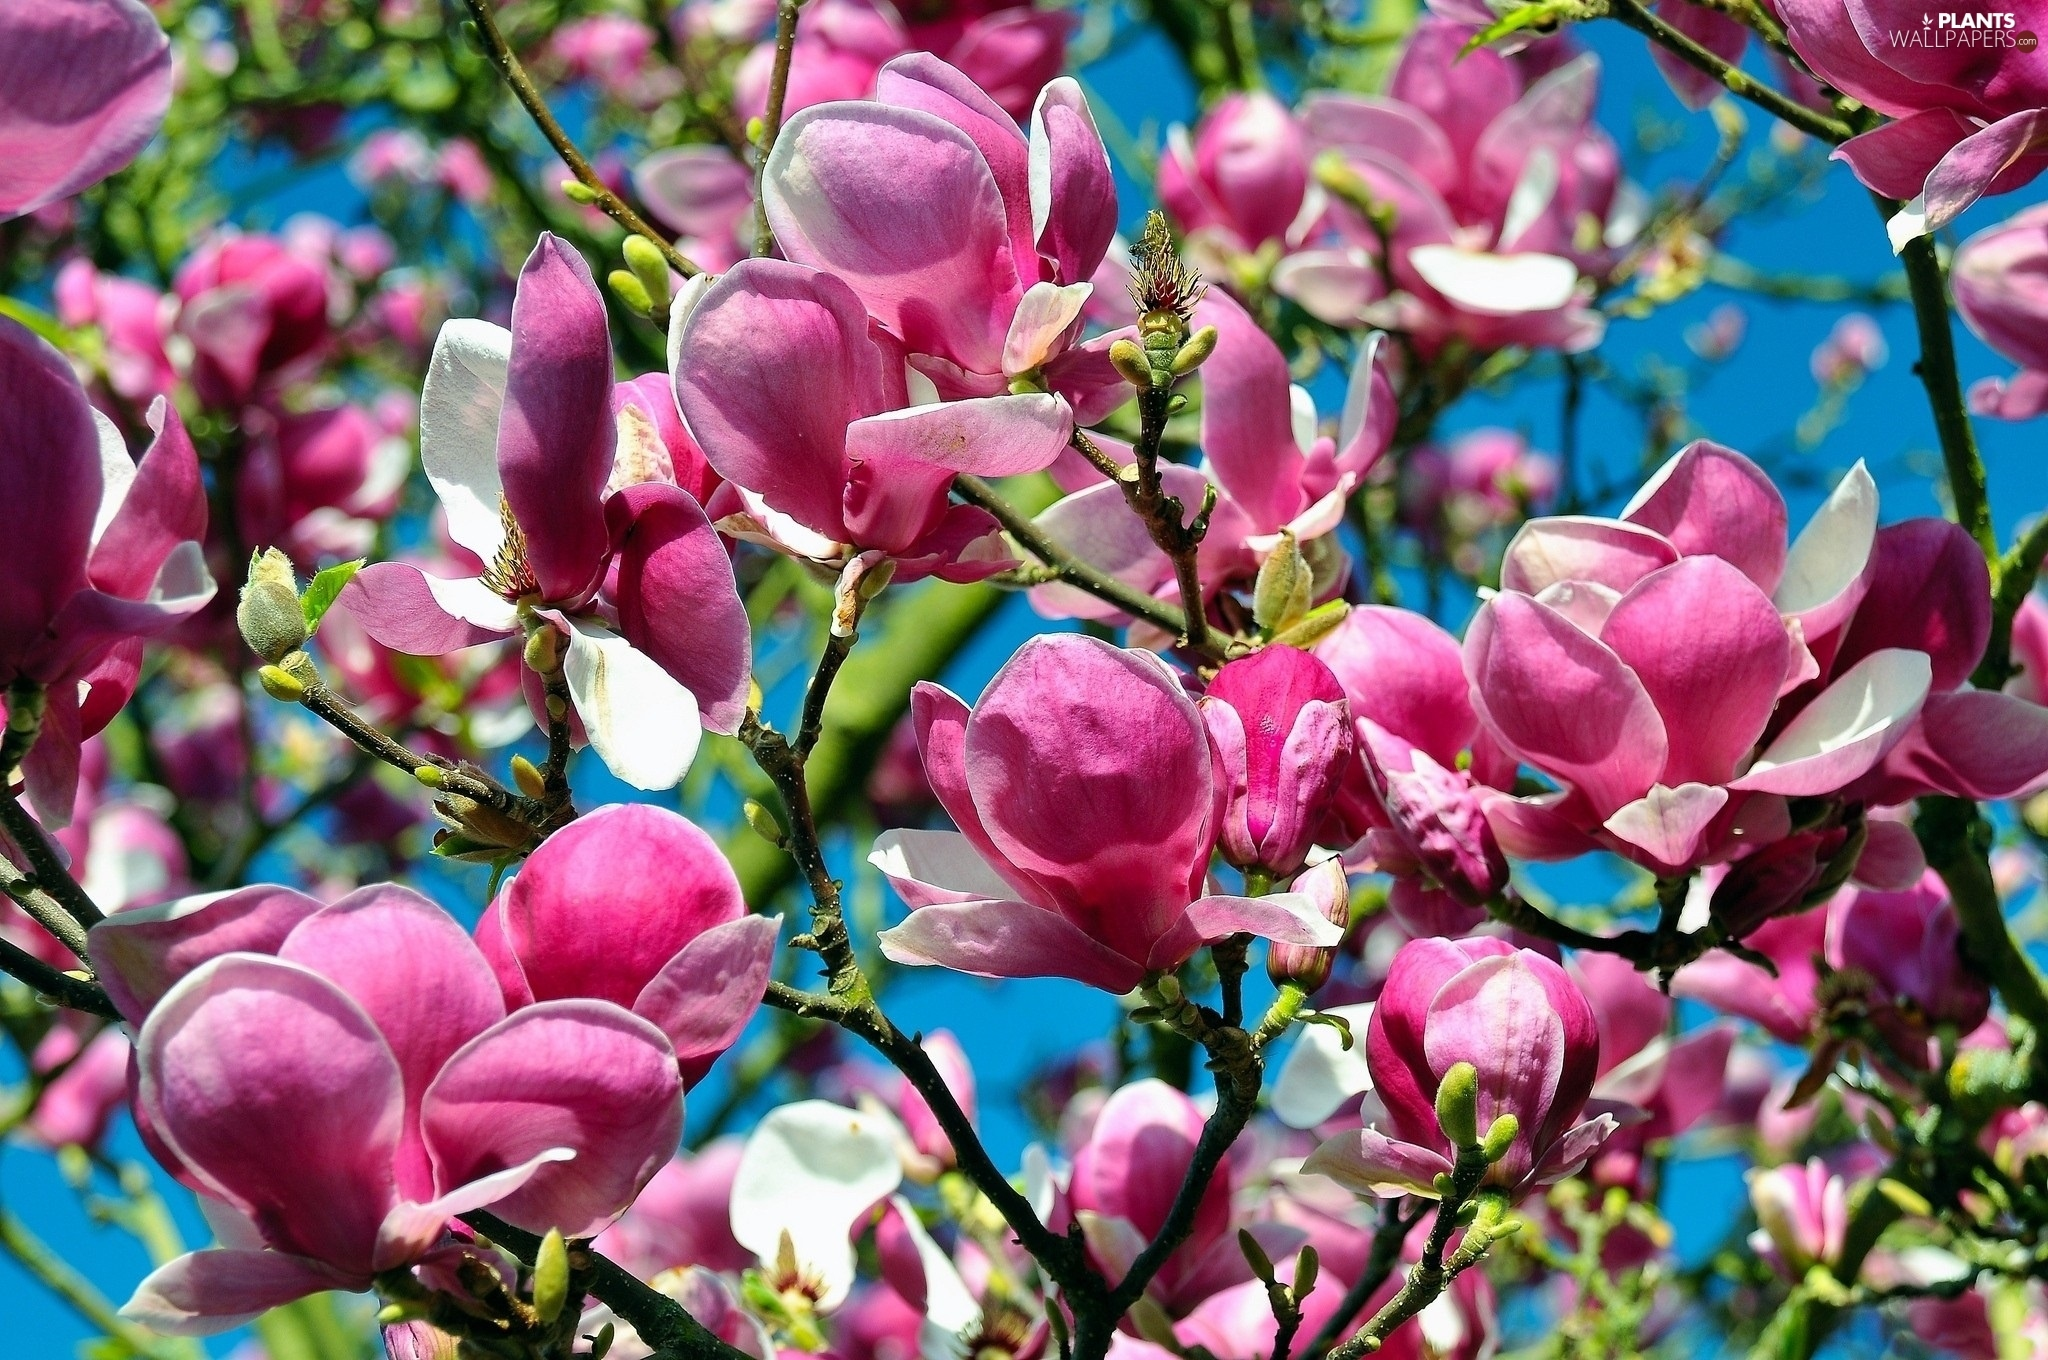 Flowers, viewes, Magnolii, trees